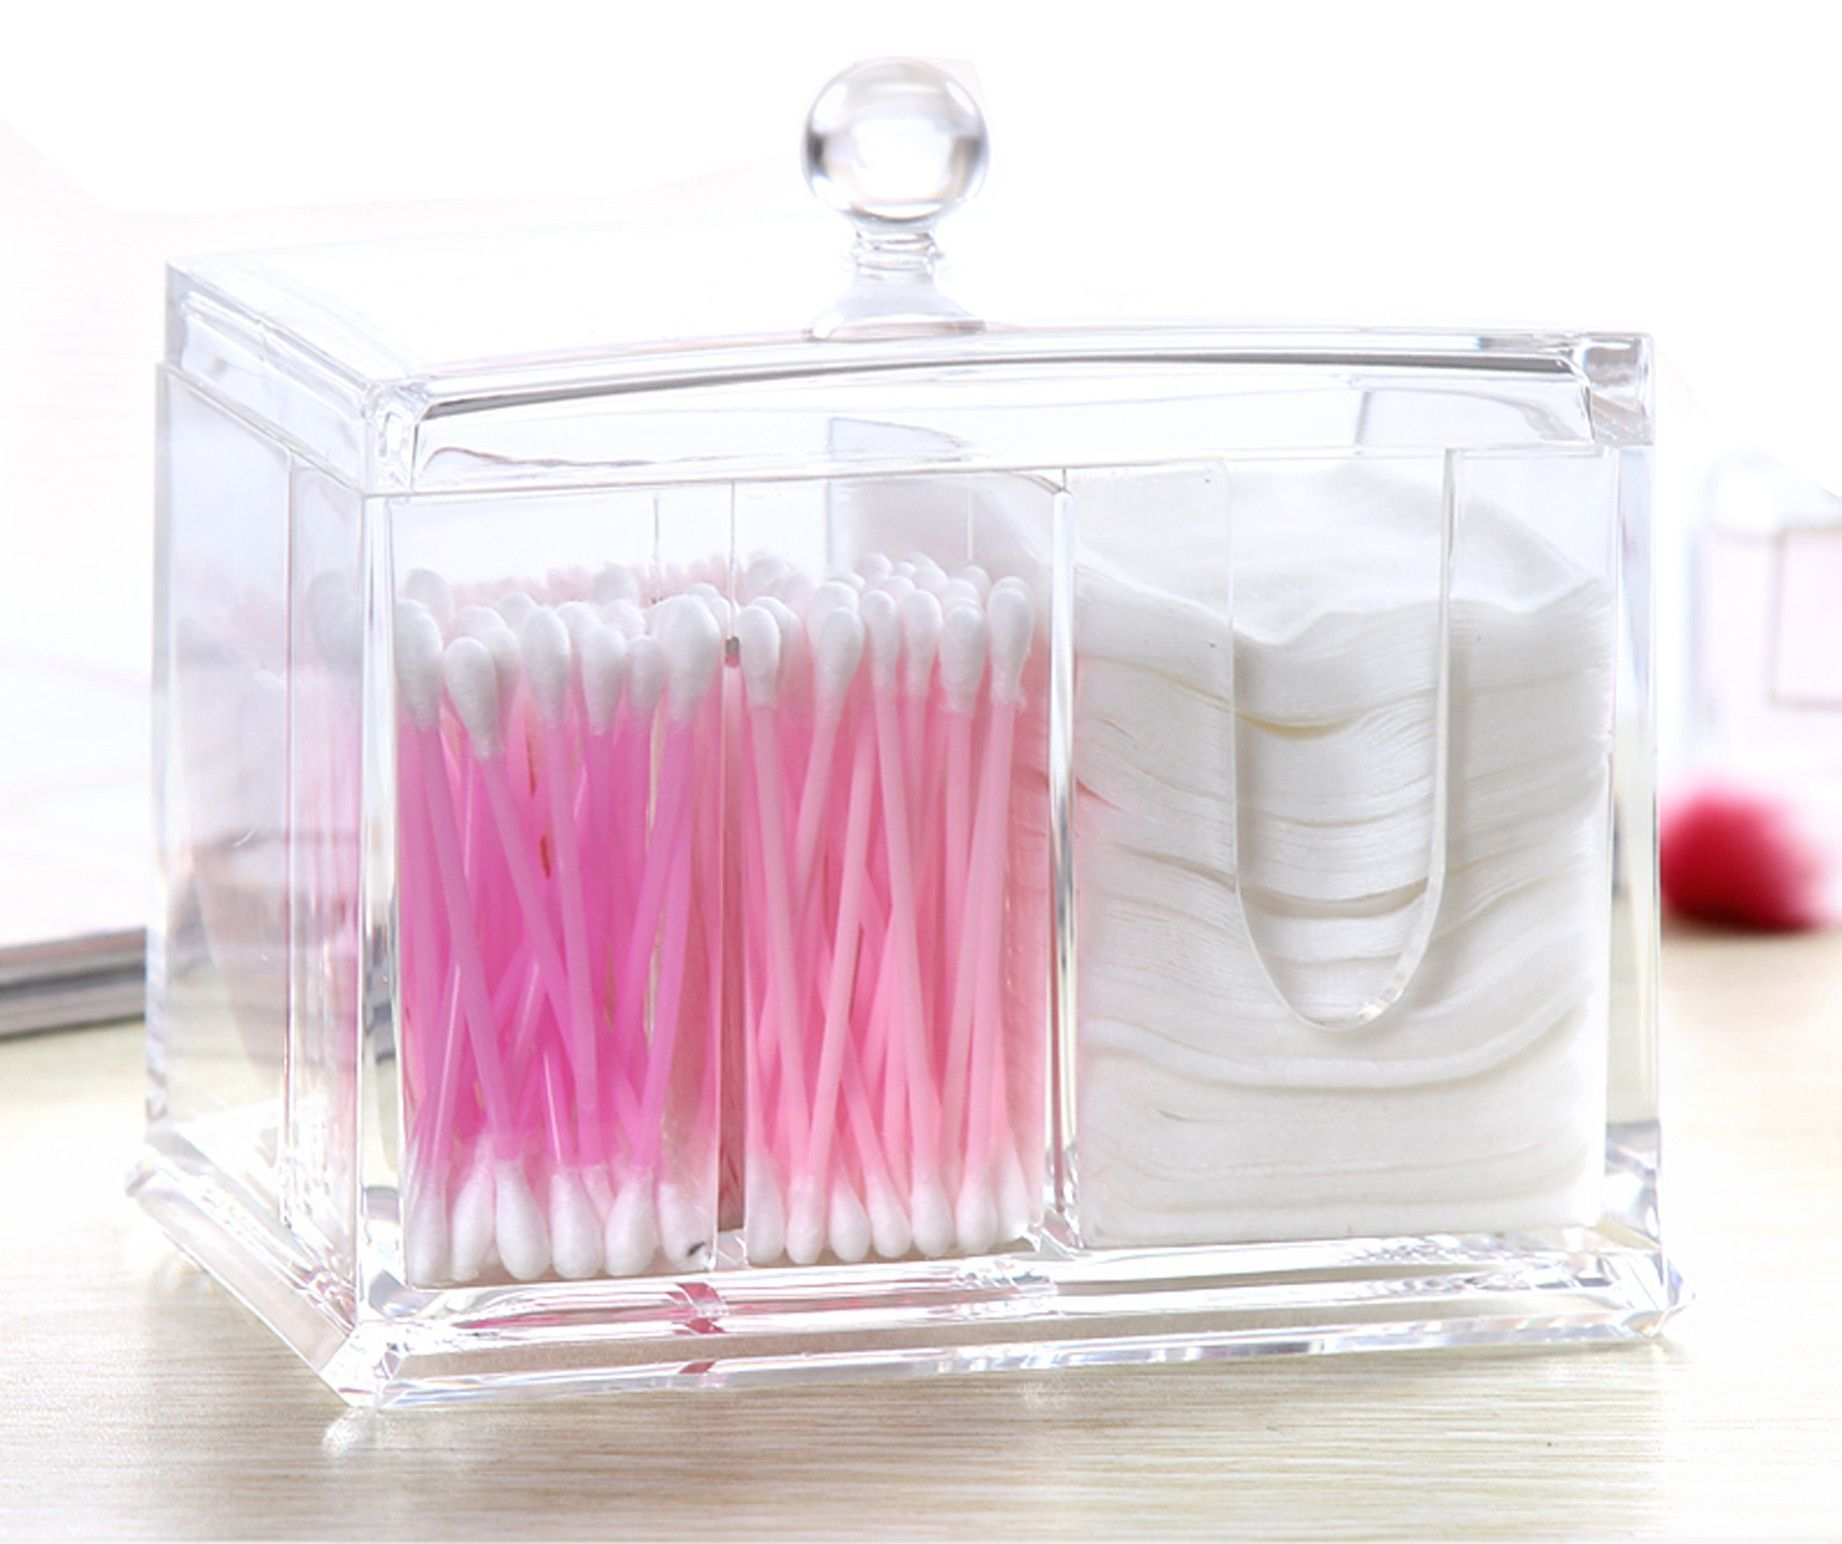 Putwo Cotton Pads Holder Acrylic Makeup Organiser Cotton